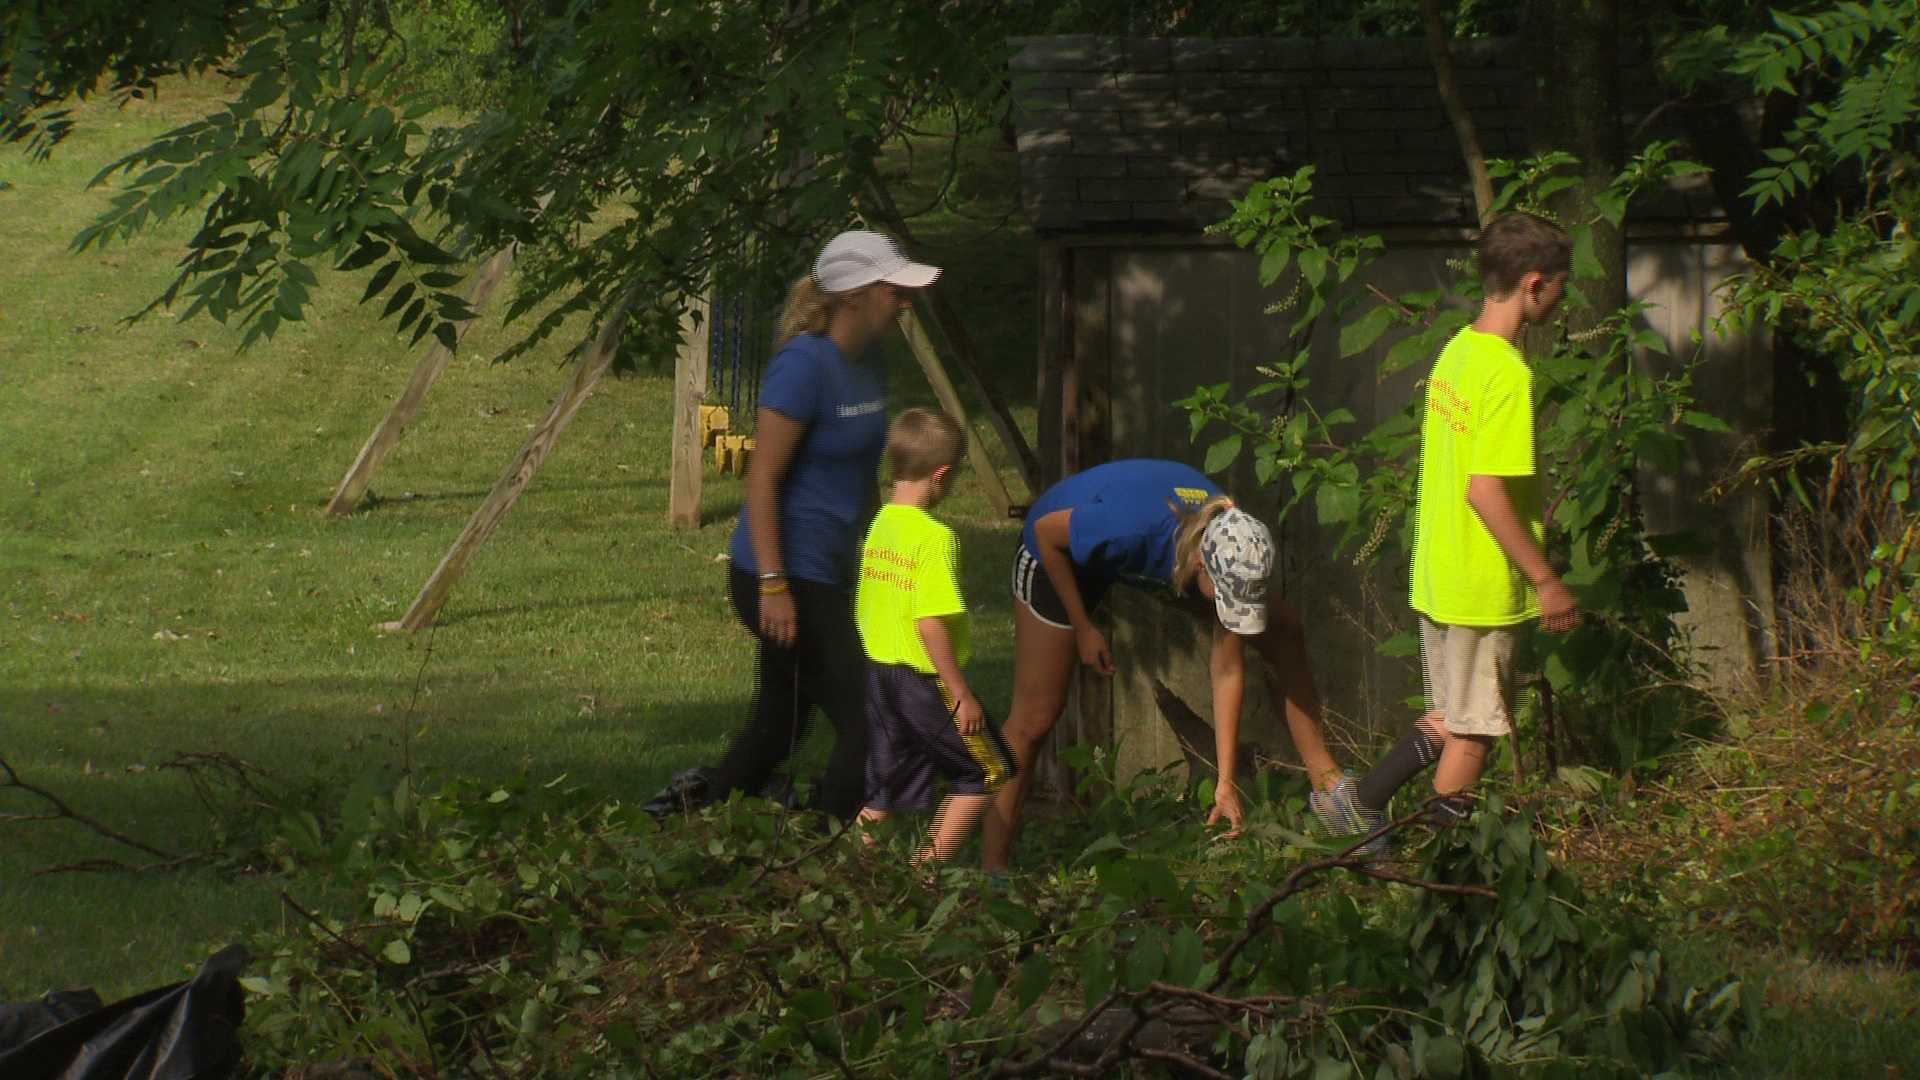 The Murset family helps with chores in Elkridge as a way to pay it forward.